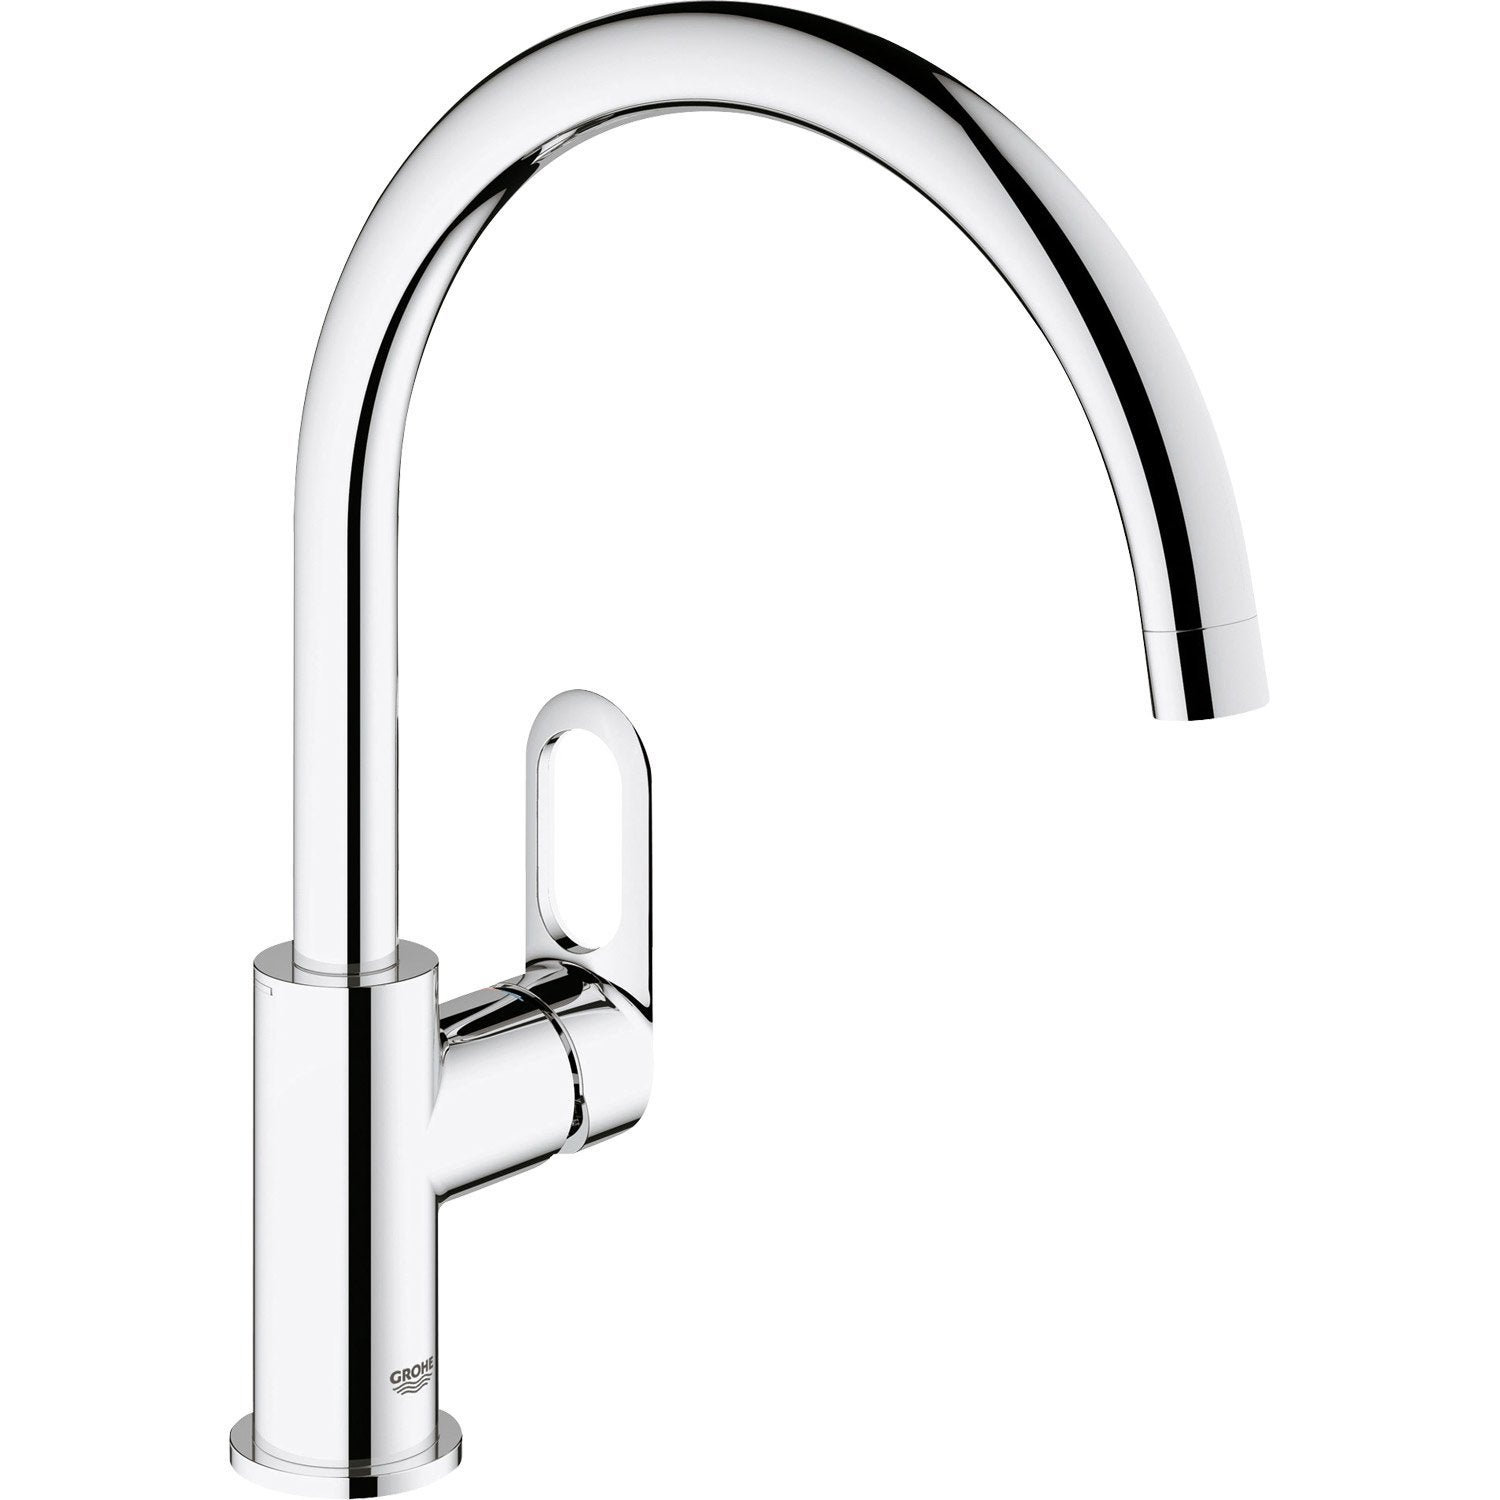 Mitigeur de cuisine chrom grohe start loop leroy merlin for Mitigeur grohe cuisine